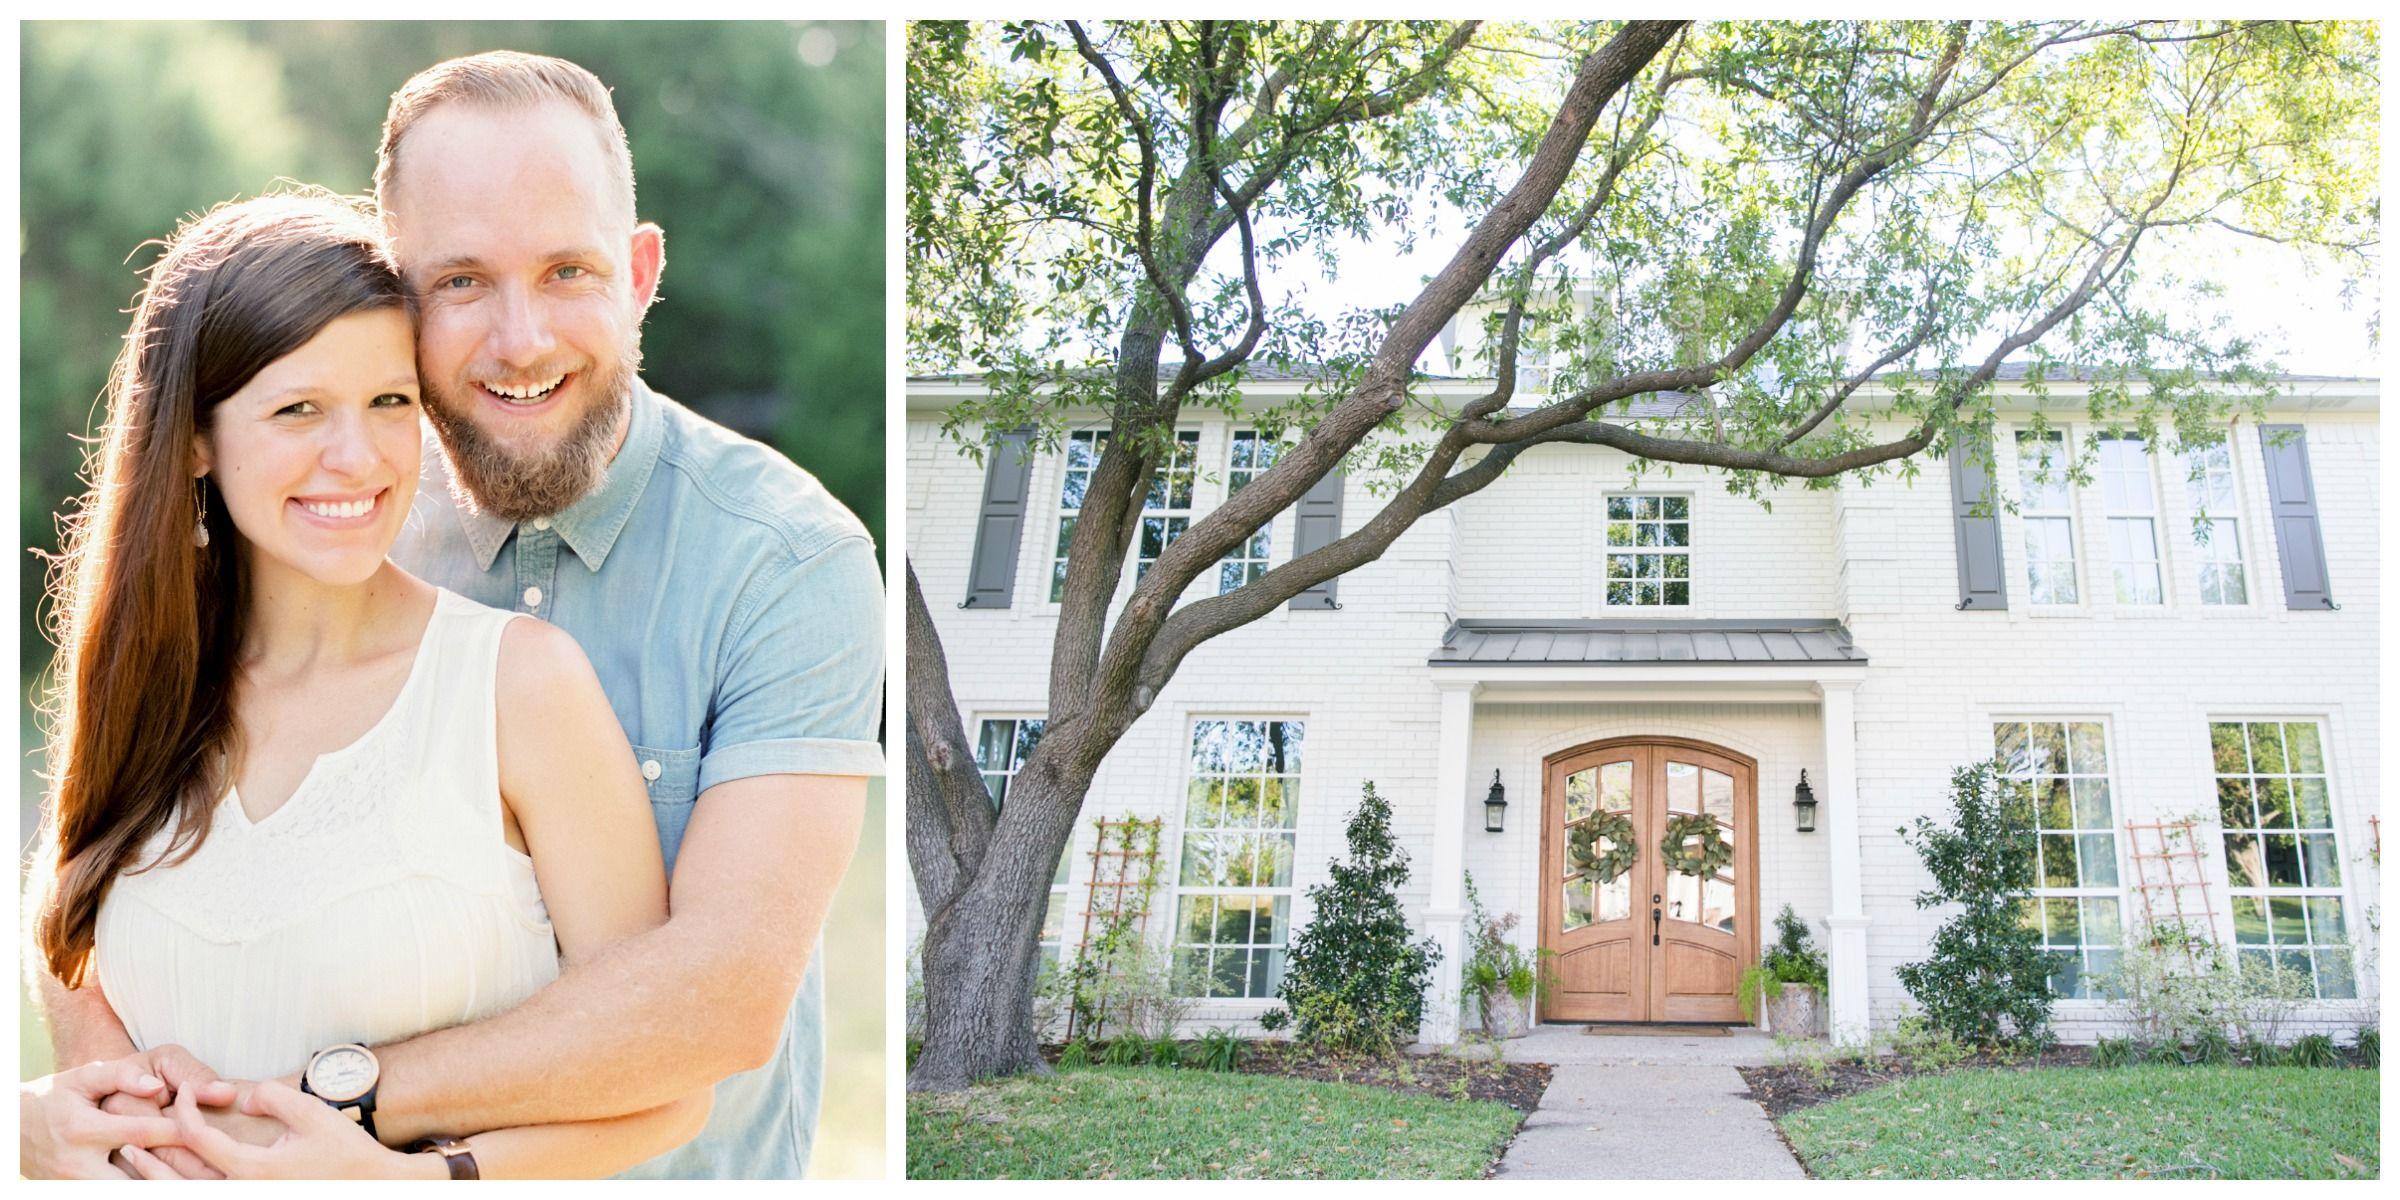 Is Fixer Upper Real or Fake? - Behind the Scenes of HGTV\'s Fixer Upper